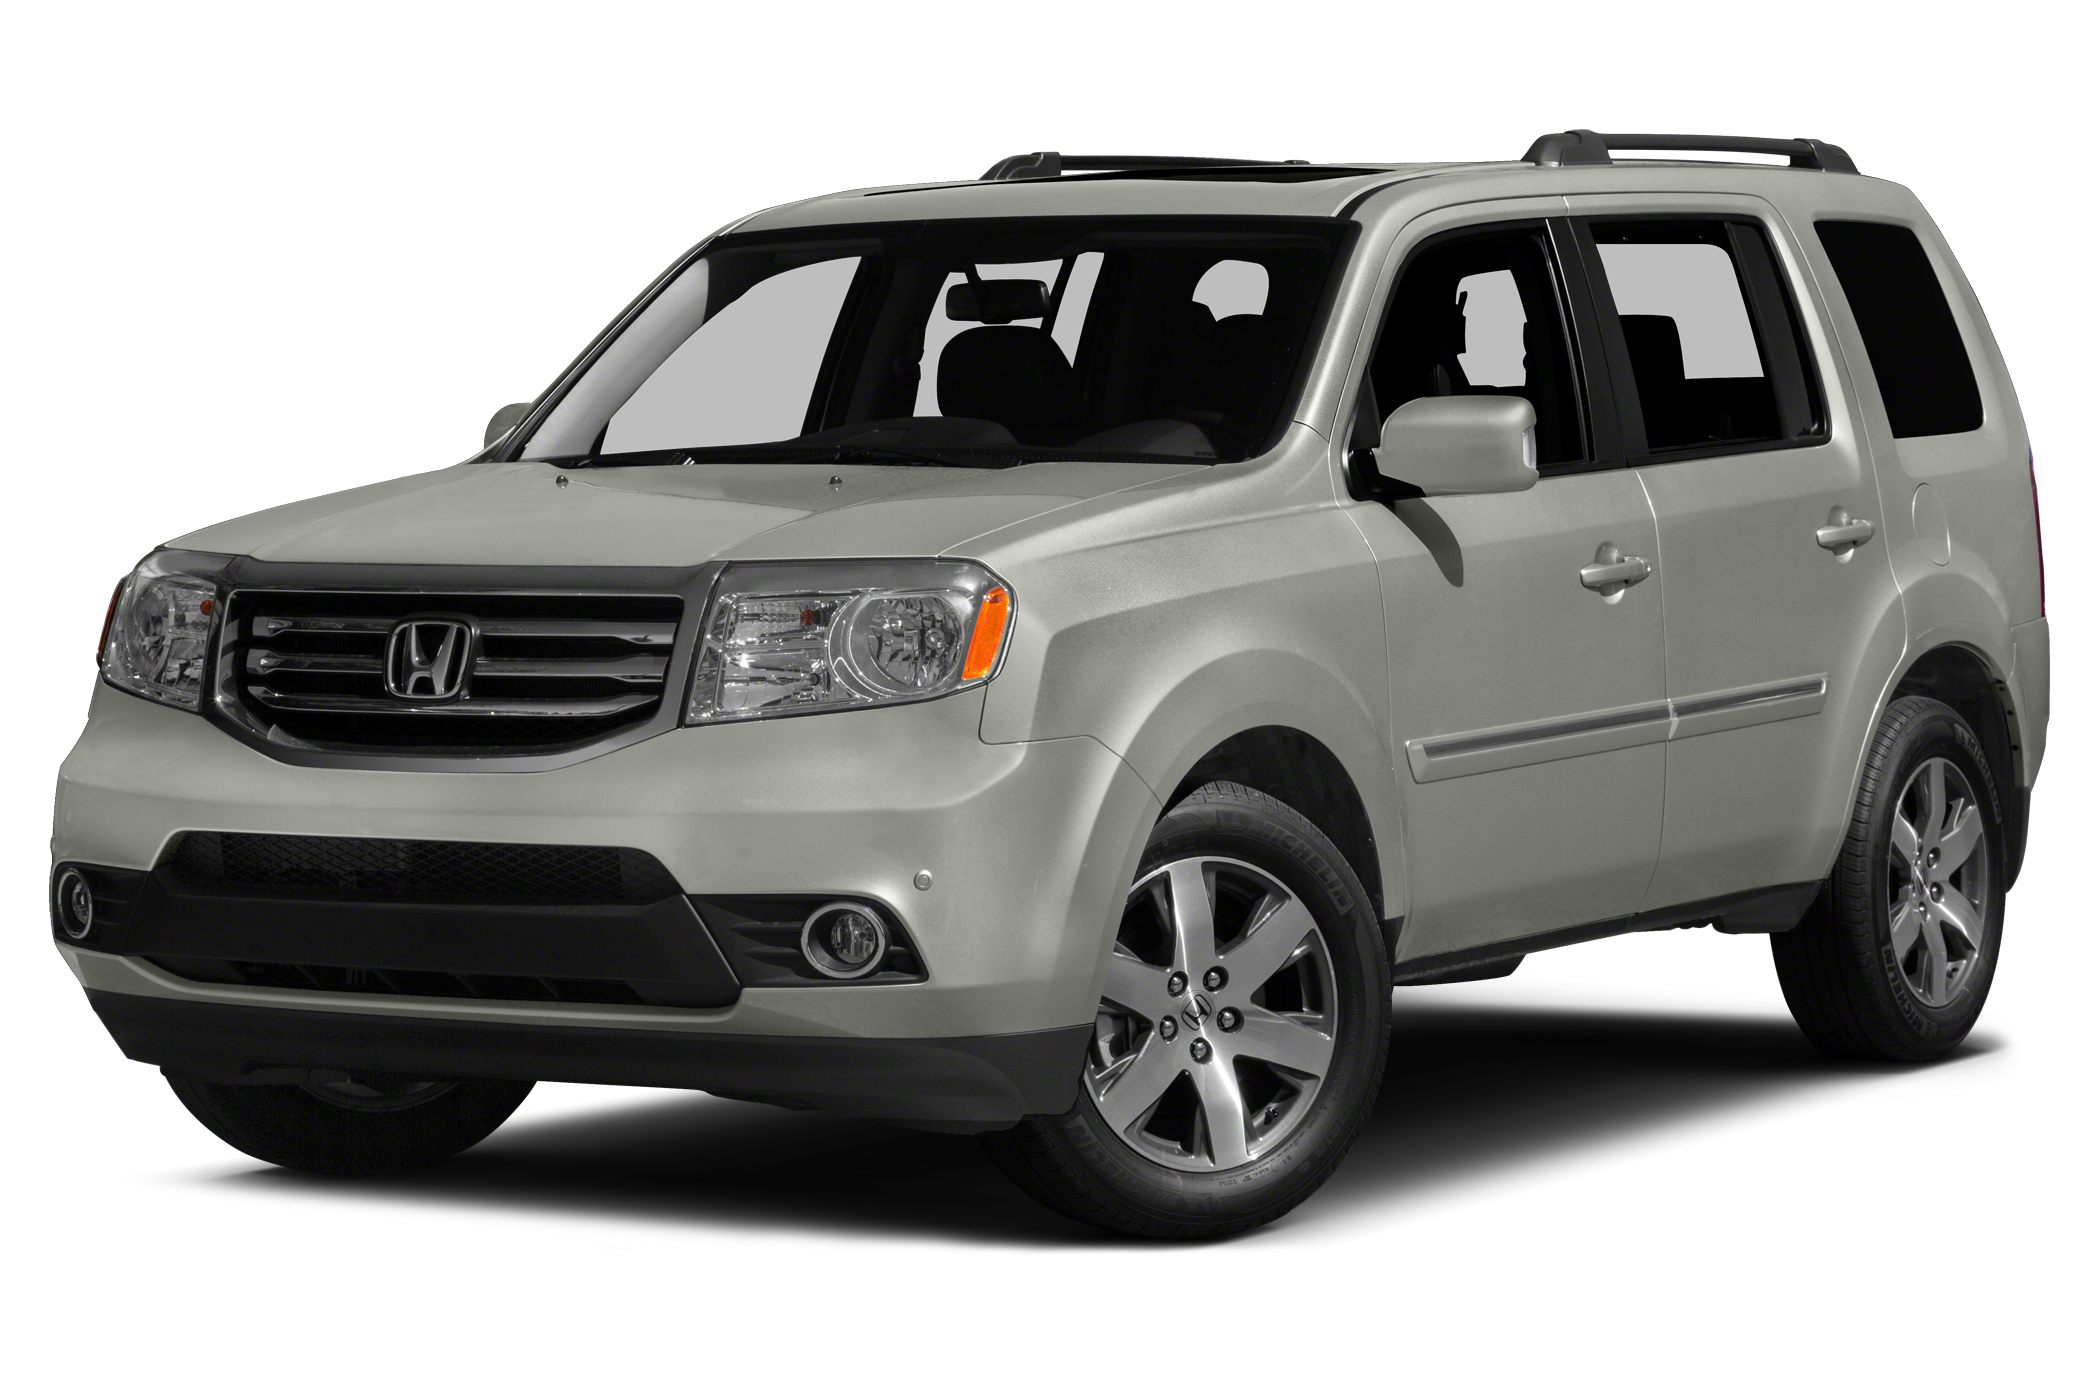 2015 Honda Pilot Touring SUV for sale in Danvers for $42,500 with 5 miles.